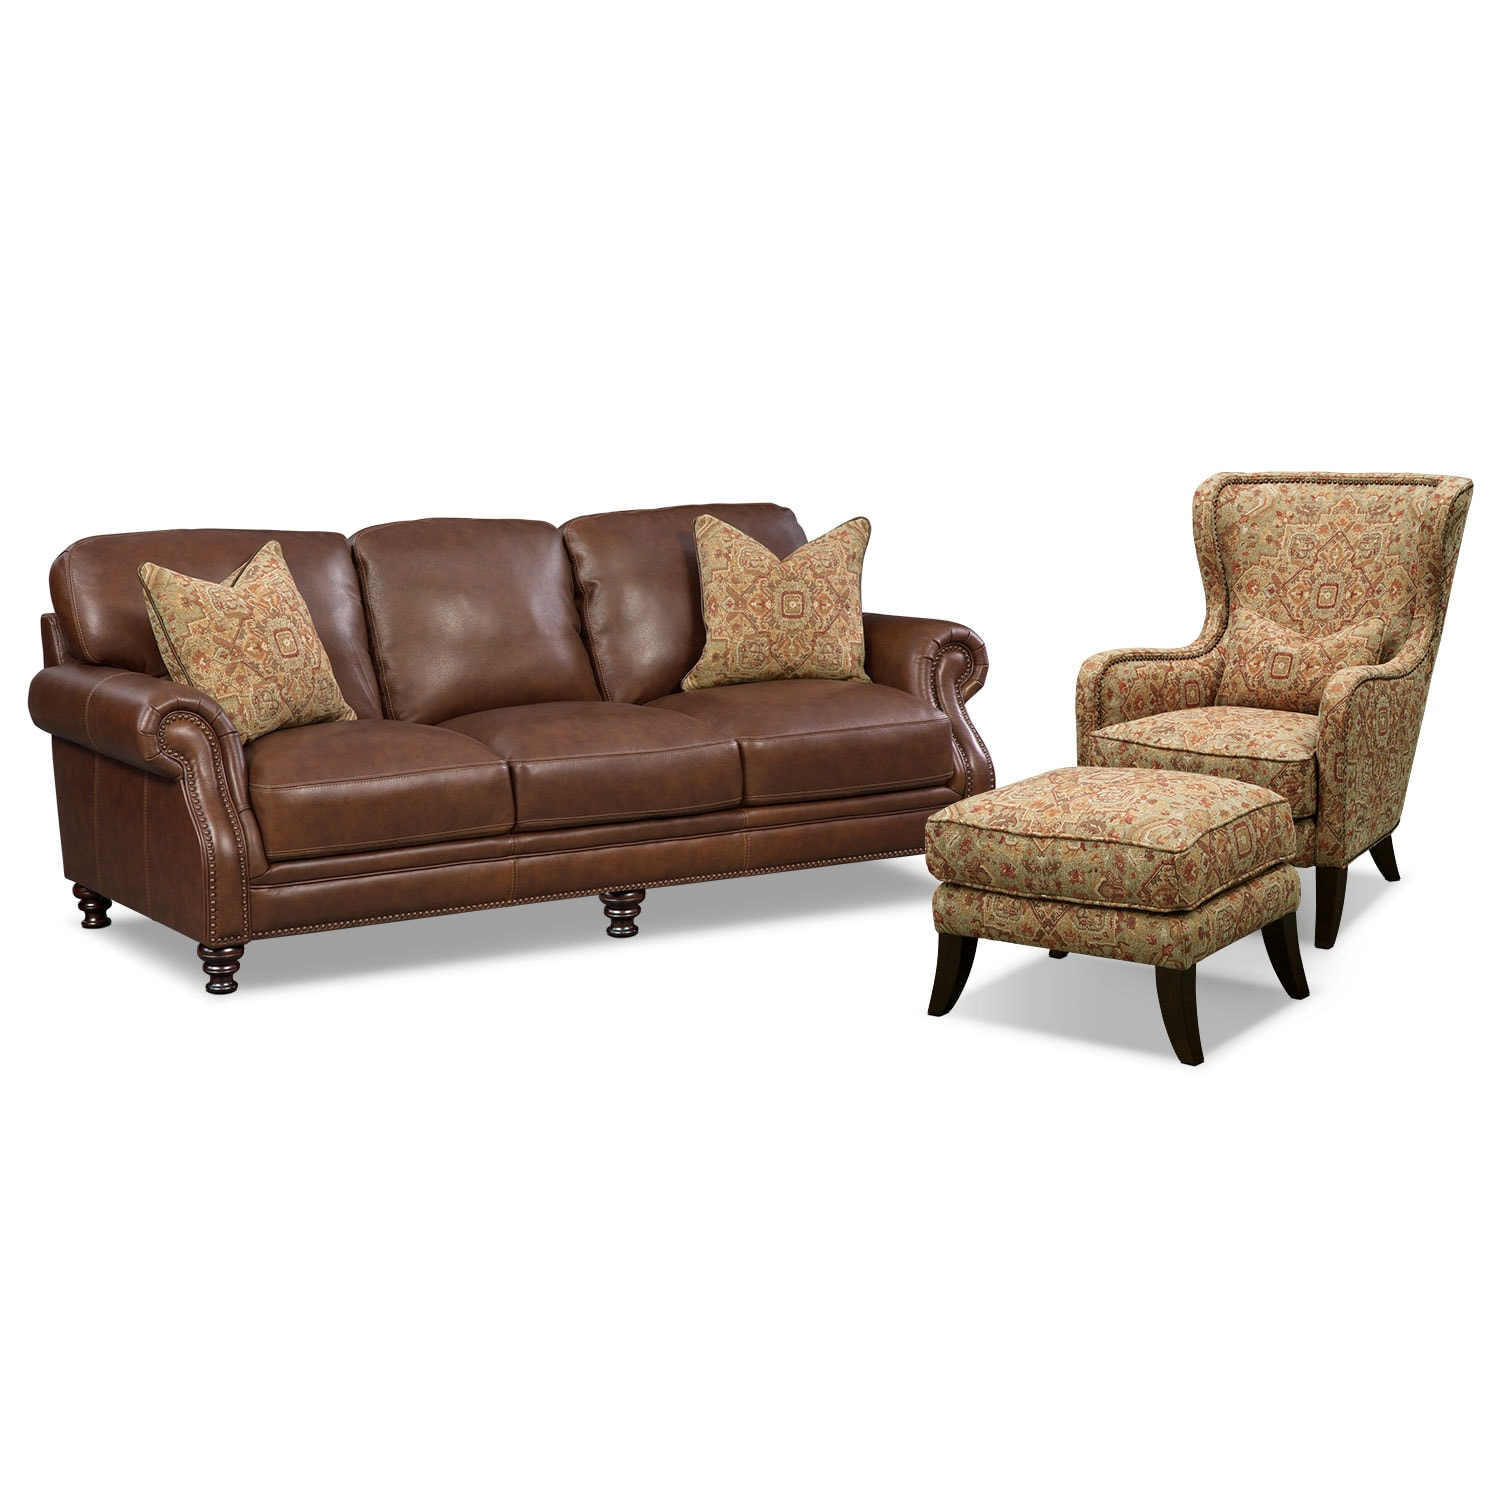 Living Room Furniture - Carrington Tobacco 3 Pc. Living Room w/ Accent Chair and Accent Ottoman